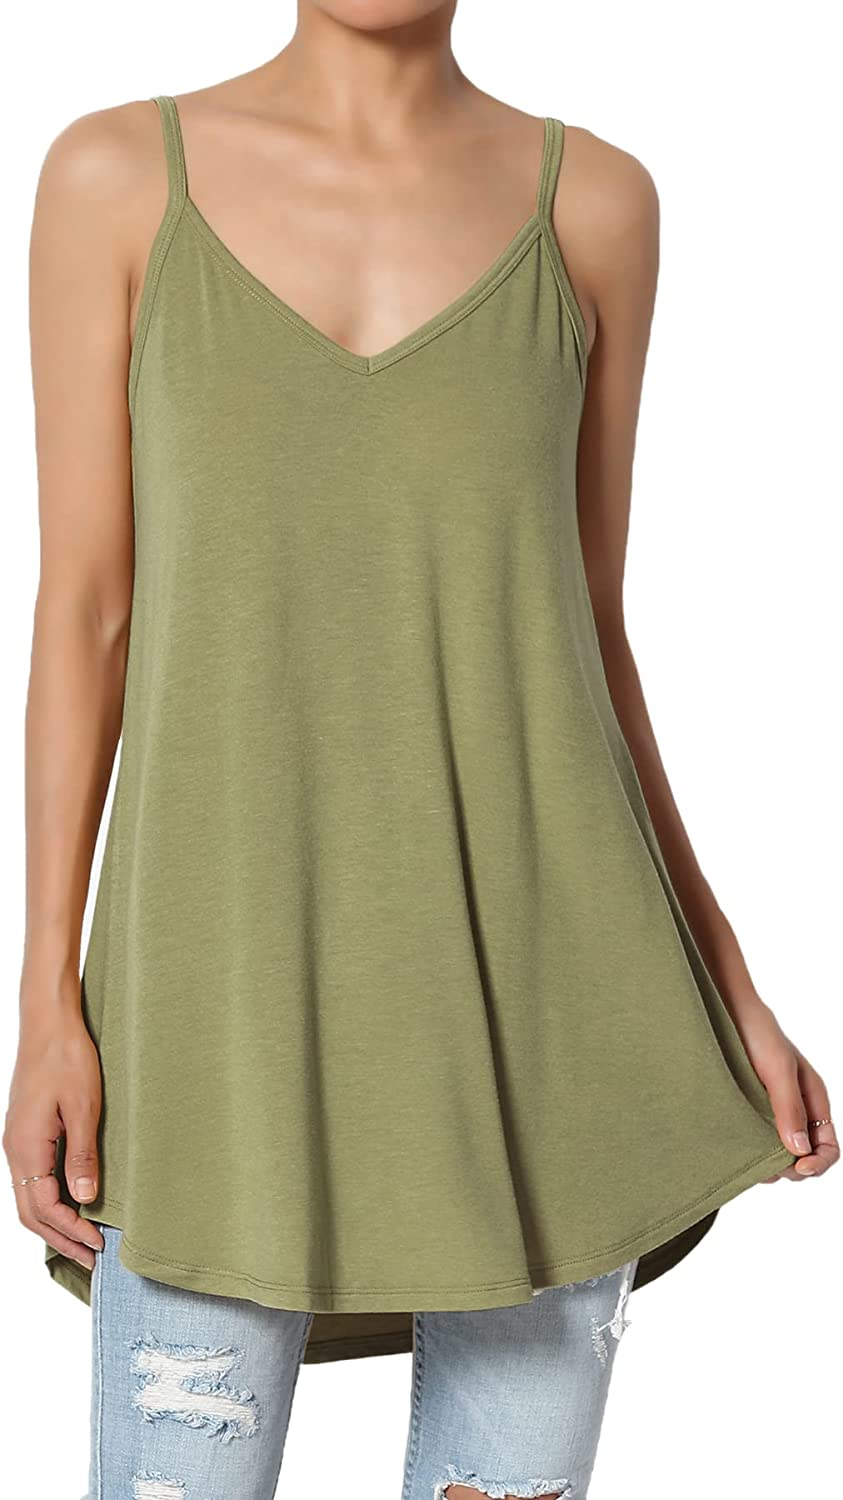 TheMogan S~3X Scoop & V Neck Stretch Draped Jersey Flared Camisole Strappy Top